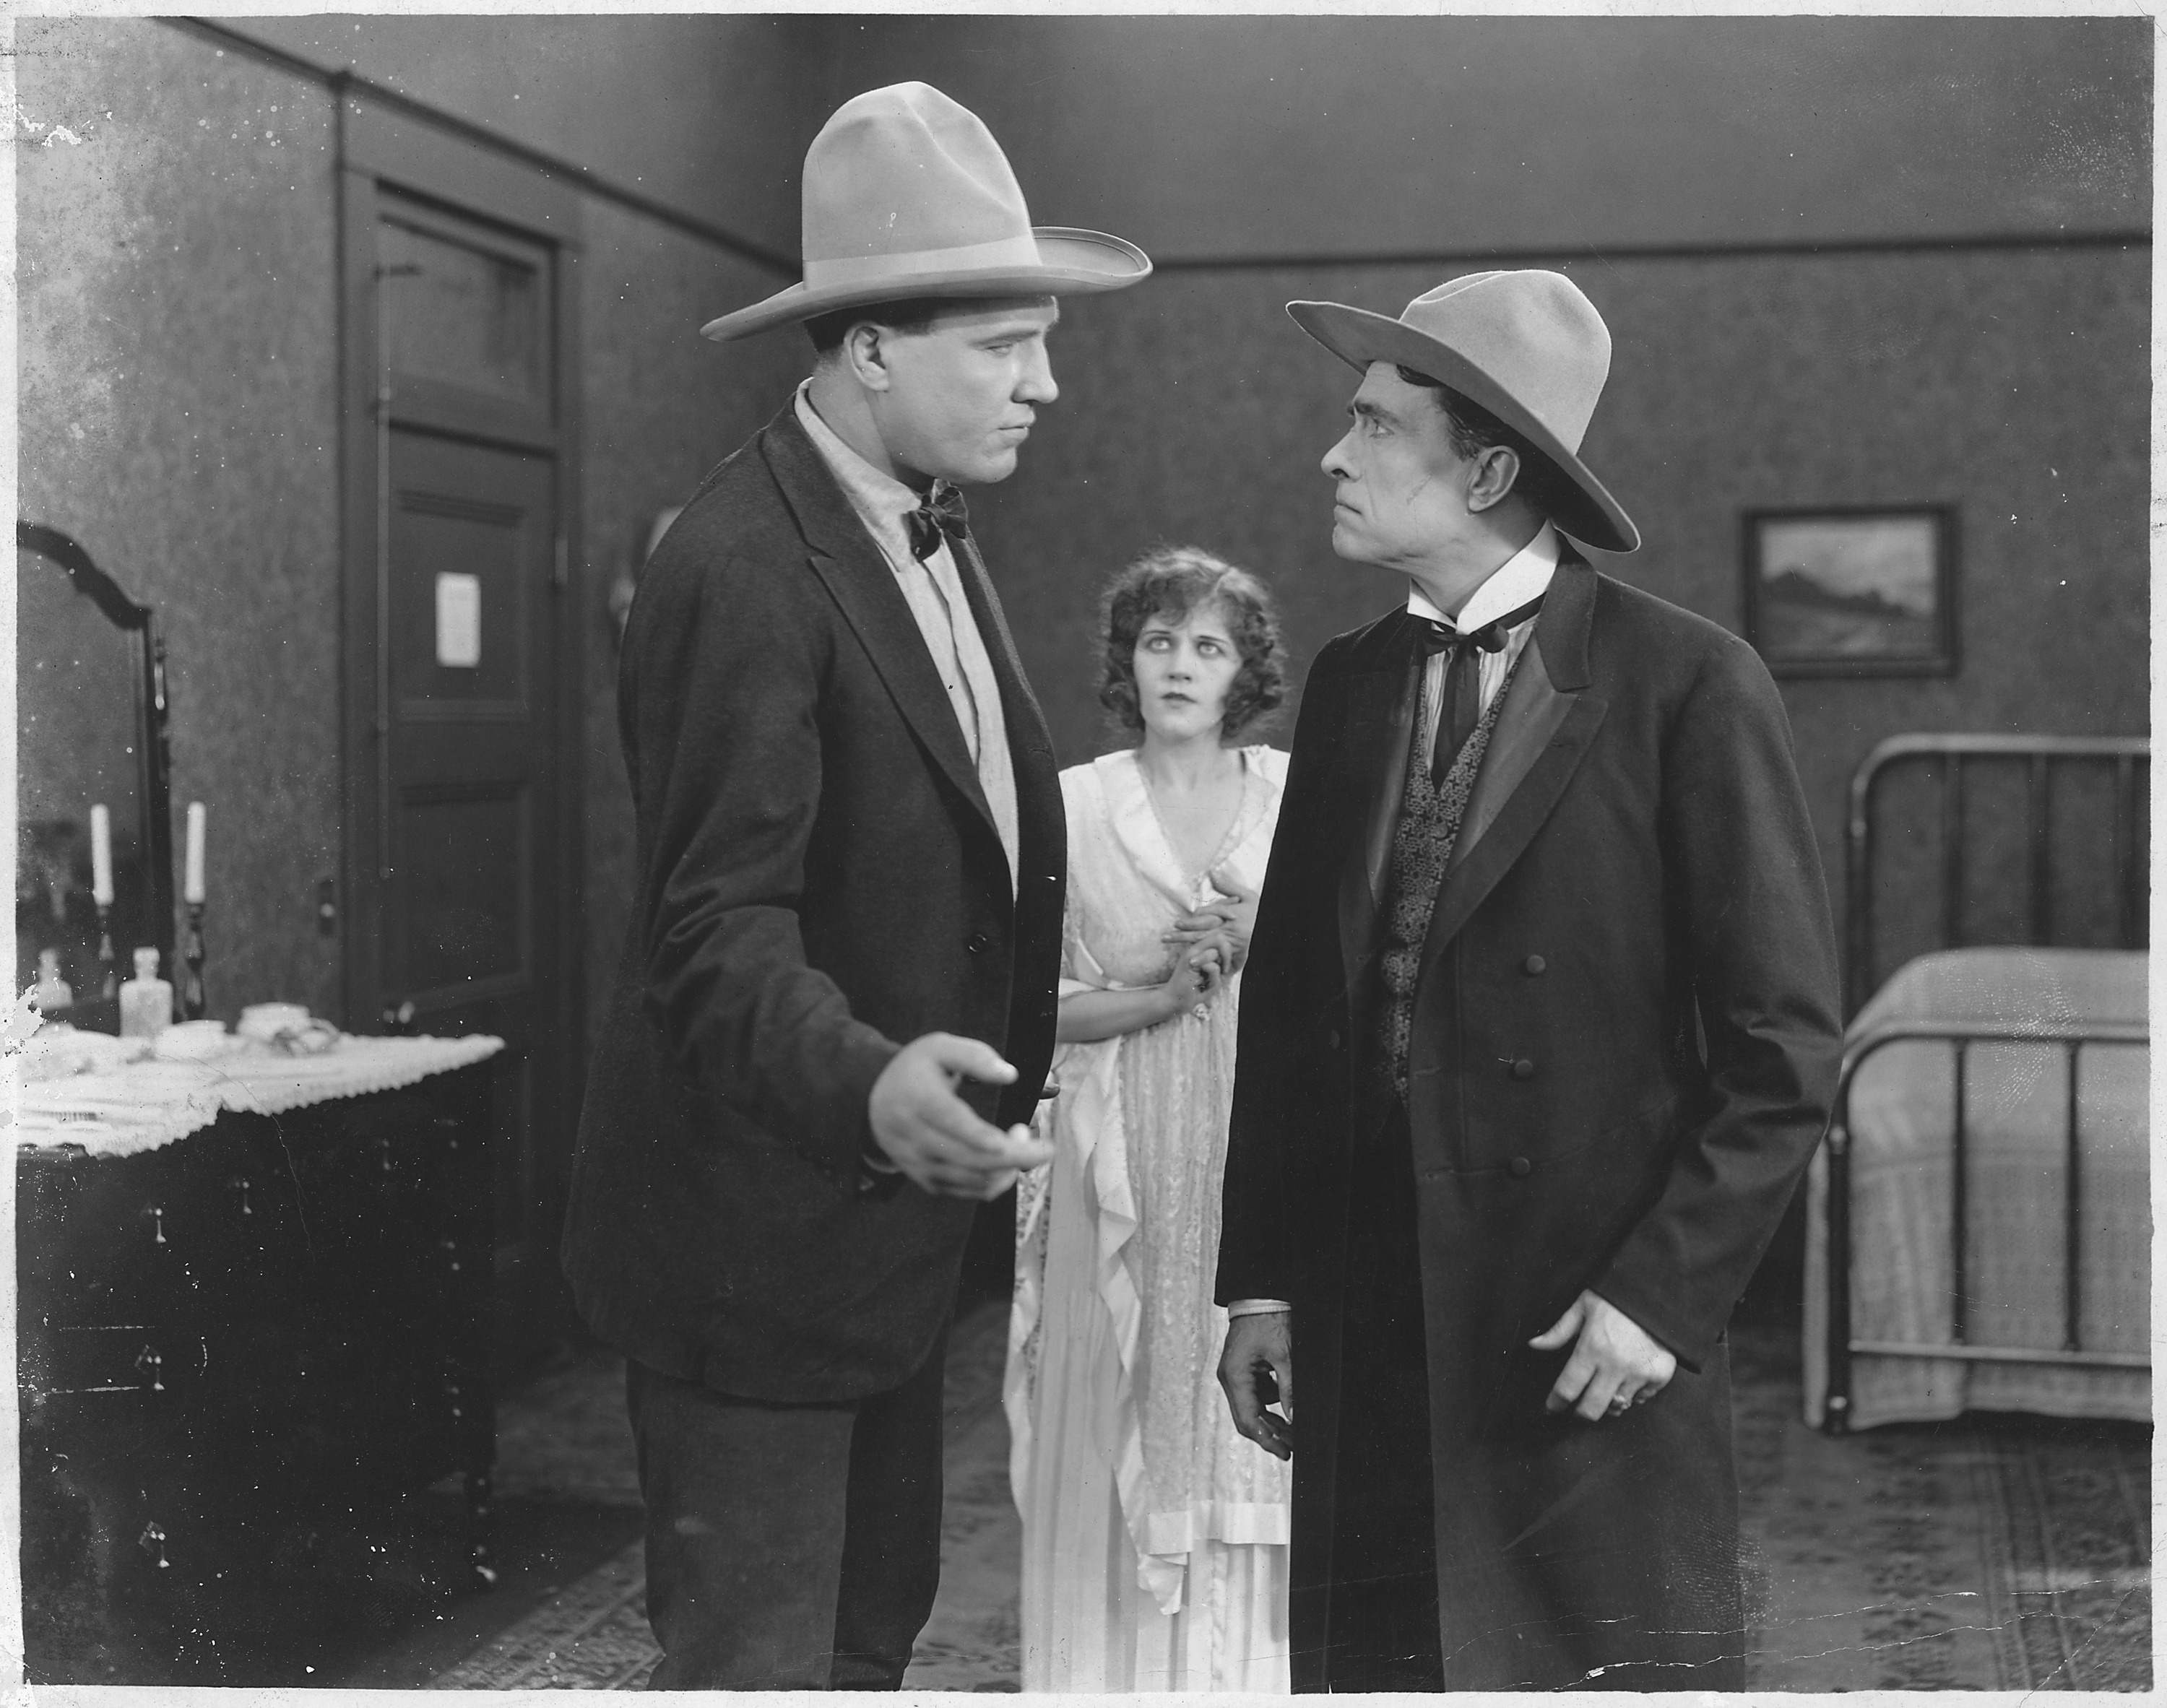 old movie still, two men in cowboy hats